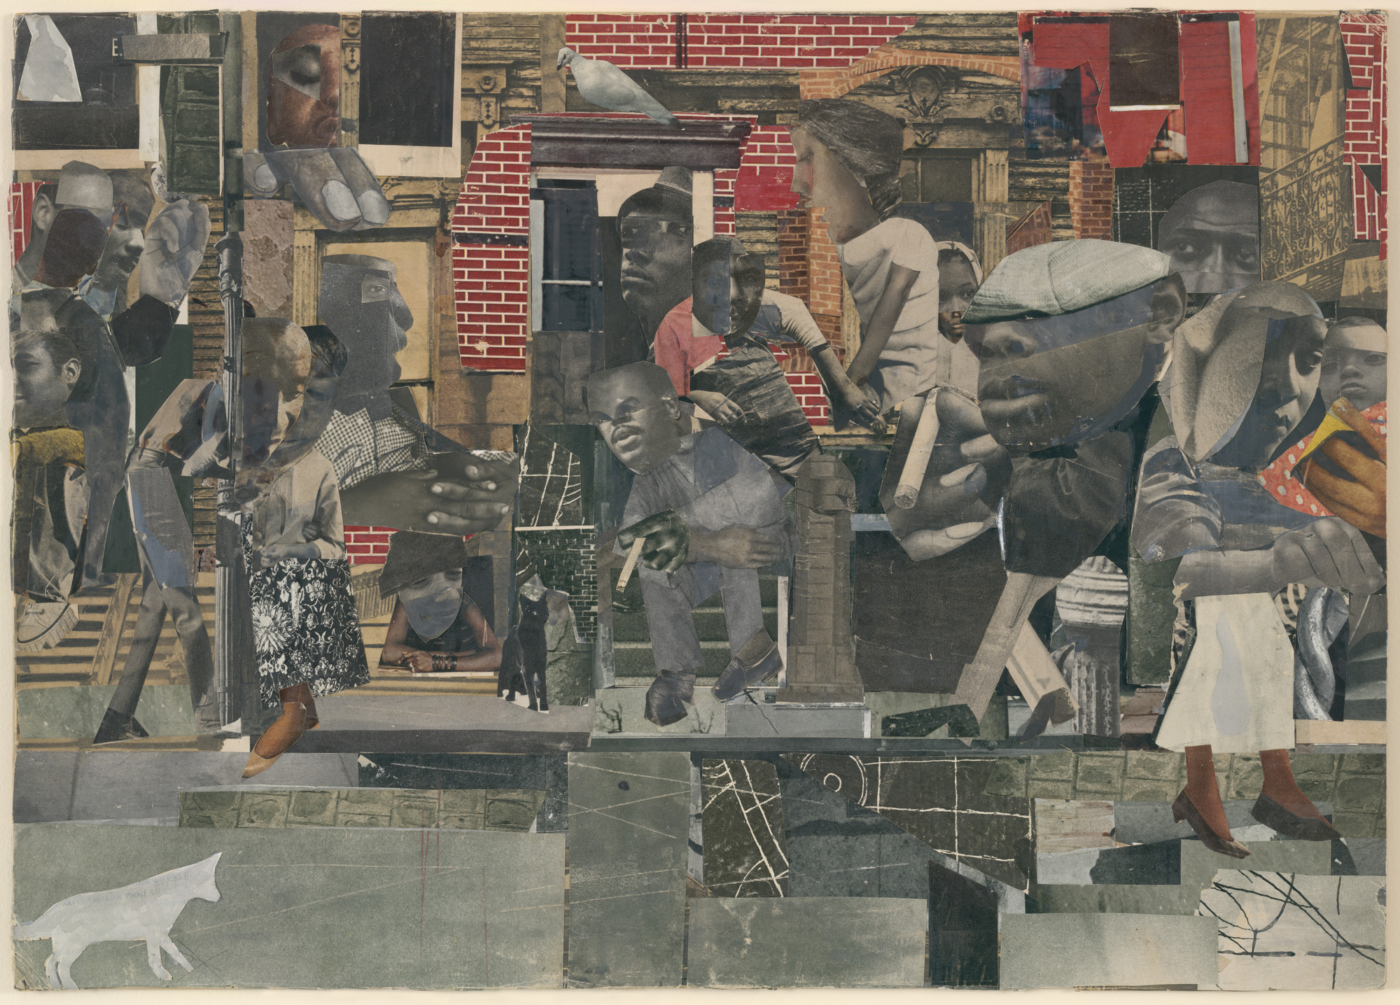 Romare Bearden. The Dove. 1964. Cut-and-pasted printed paper, gouache, pencil, and colored pencil on board, 13 3/8 × 18 ¾.″ Courtesy Museum of Modern Art, Photo by Thomas Griesel.